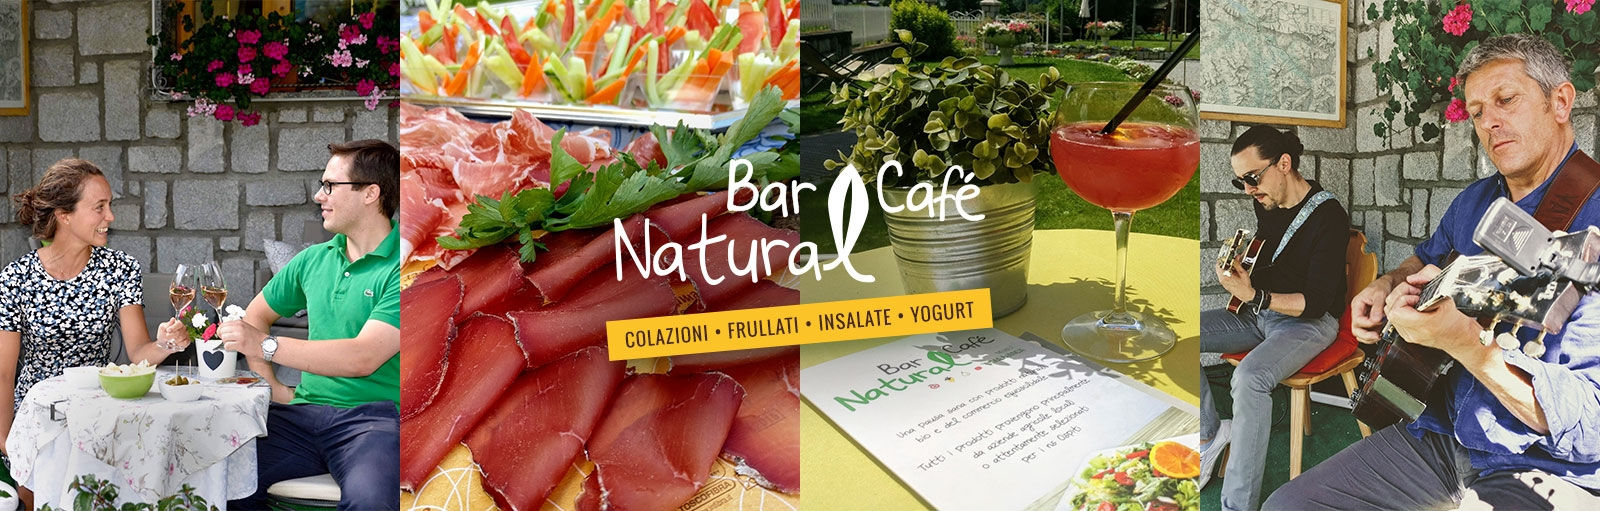 Natural Bar Cafè Bormio